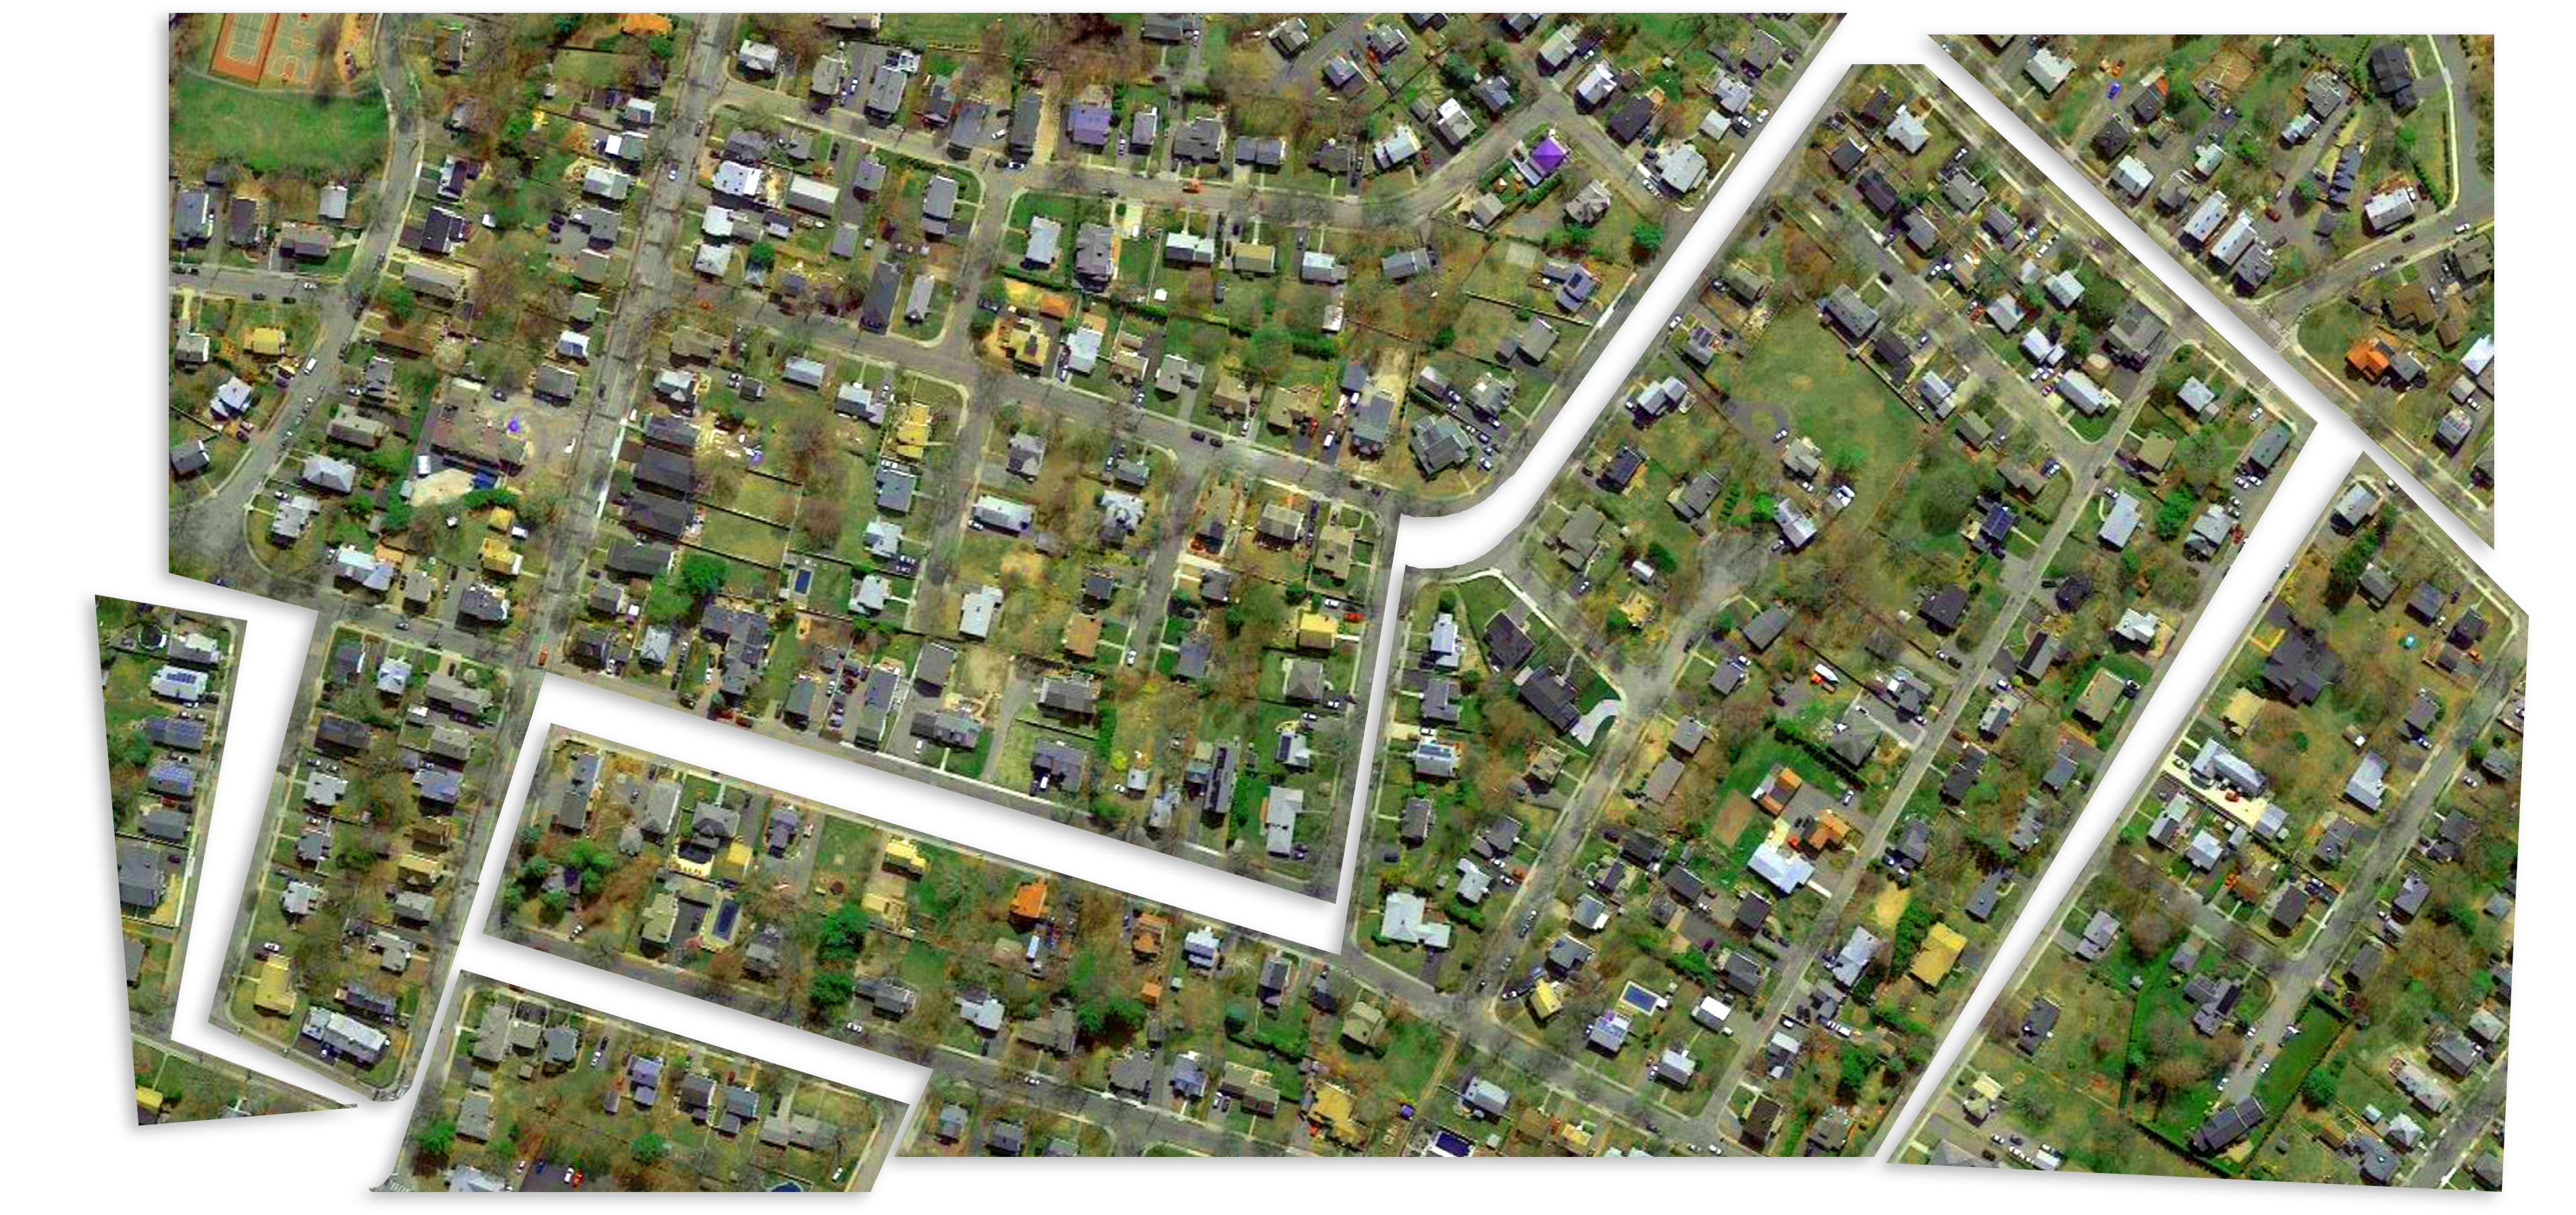 Zoning reform offers a path to economic equality and social integration